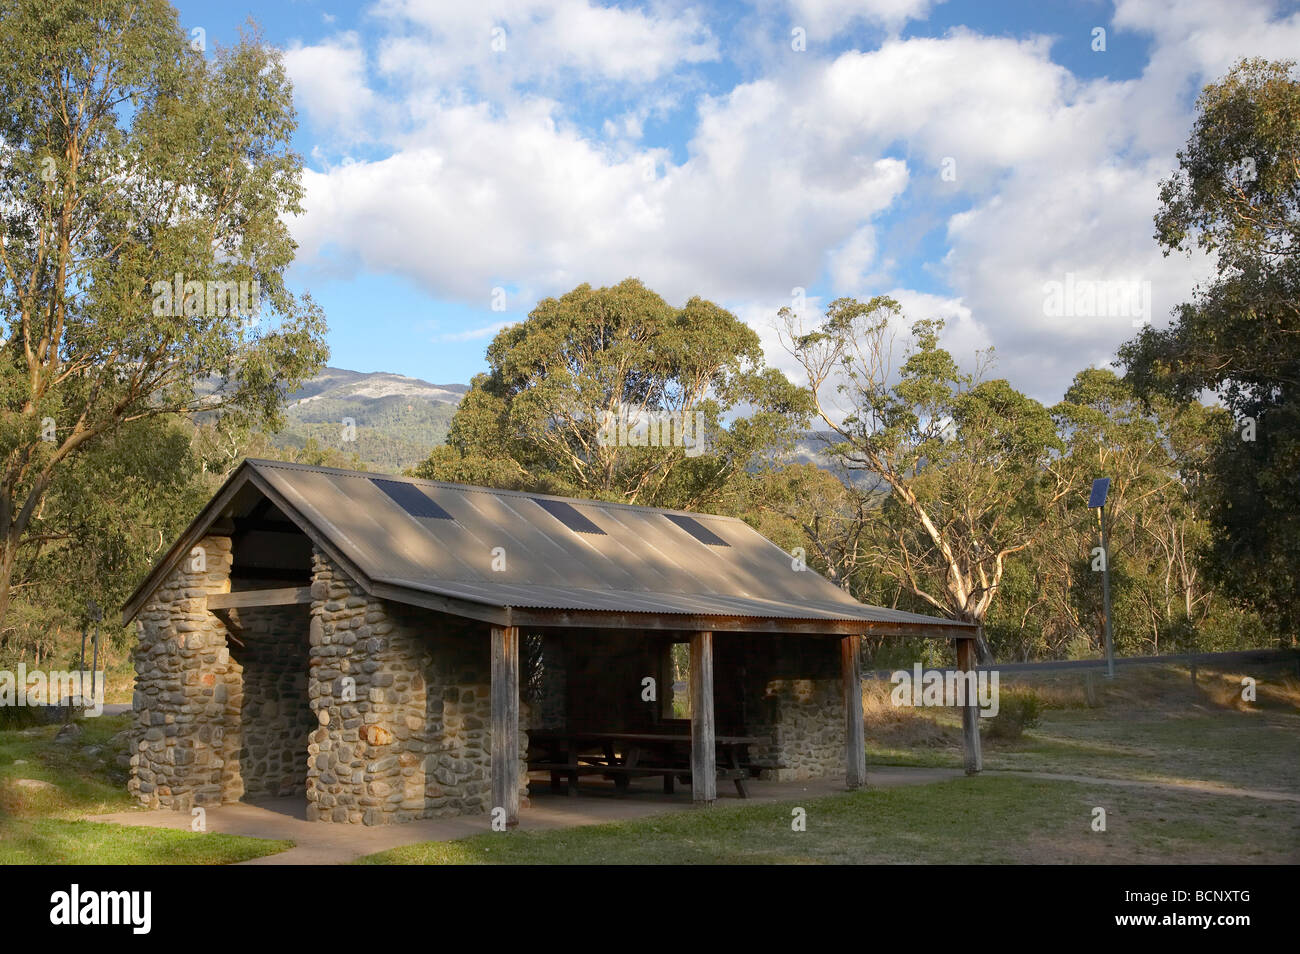 Picnic Shelter Geehi Flats Picnic Area Kosciuszko National Park Snowy Mountains New South Wales Australia - Stock Image